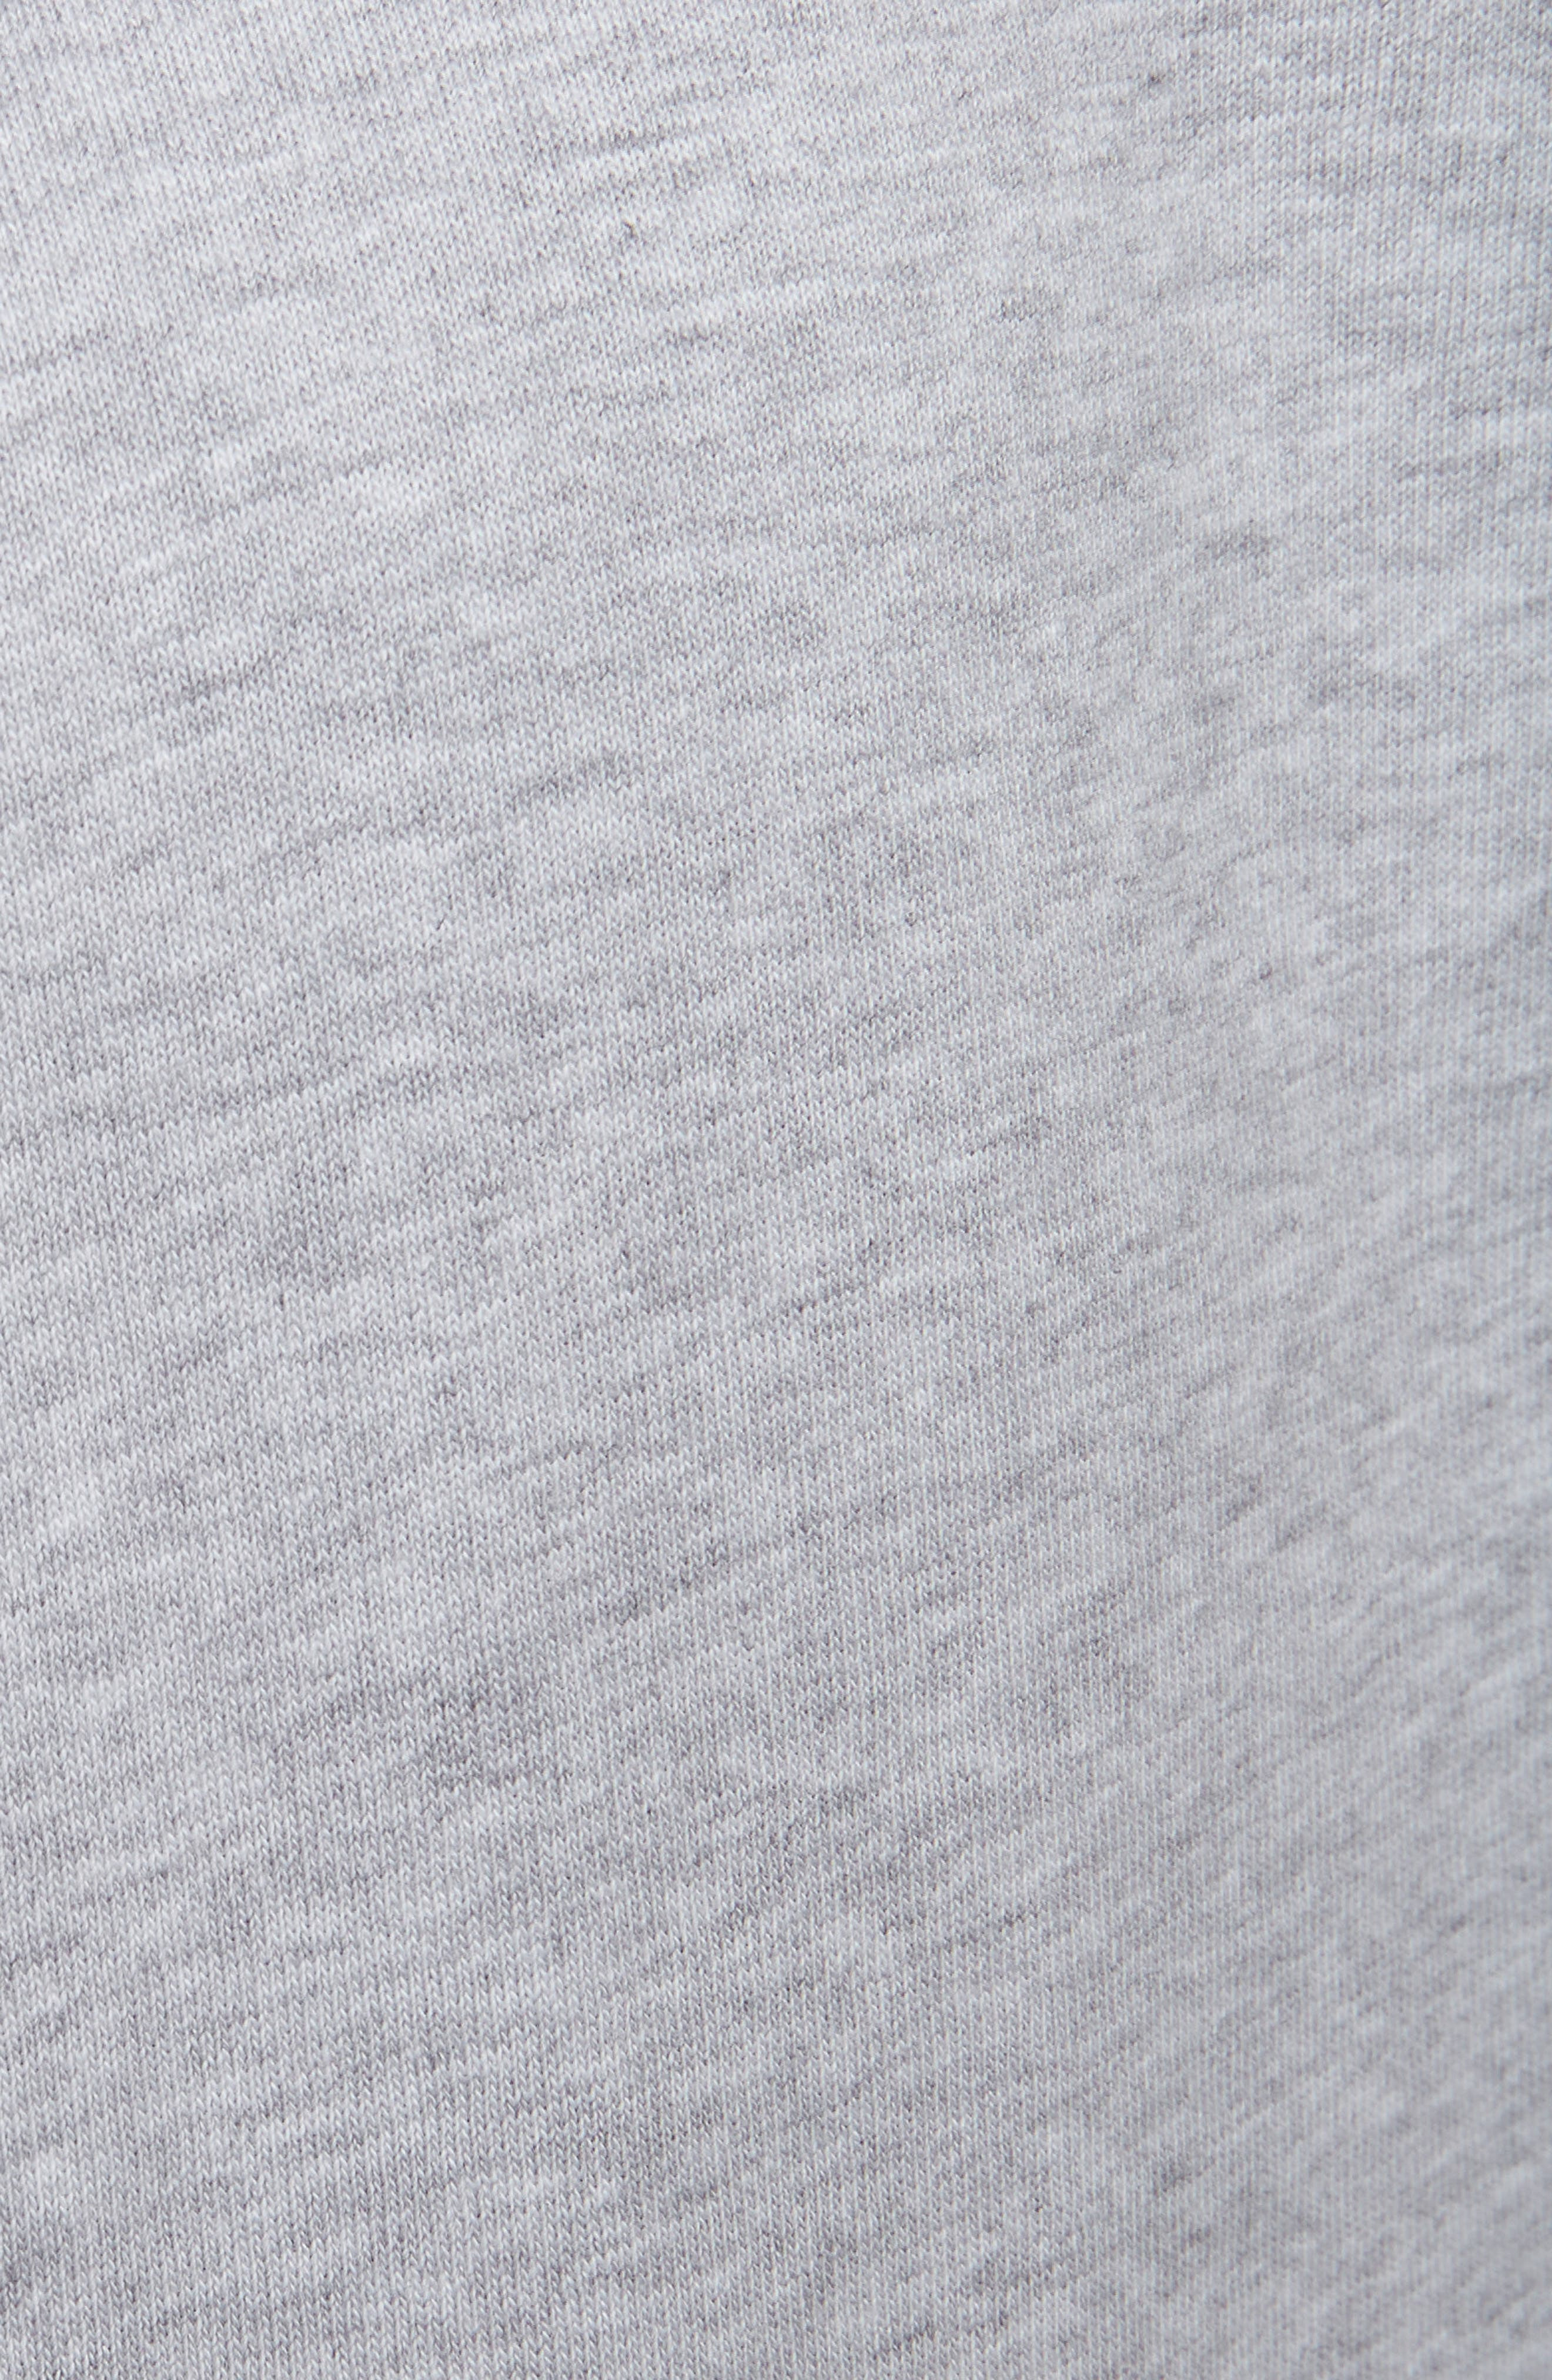 Sport Boxy Tee,                             Alternate thumbnail 5, color,                             PALE GREY